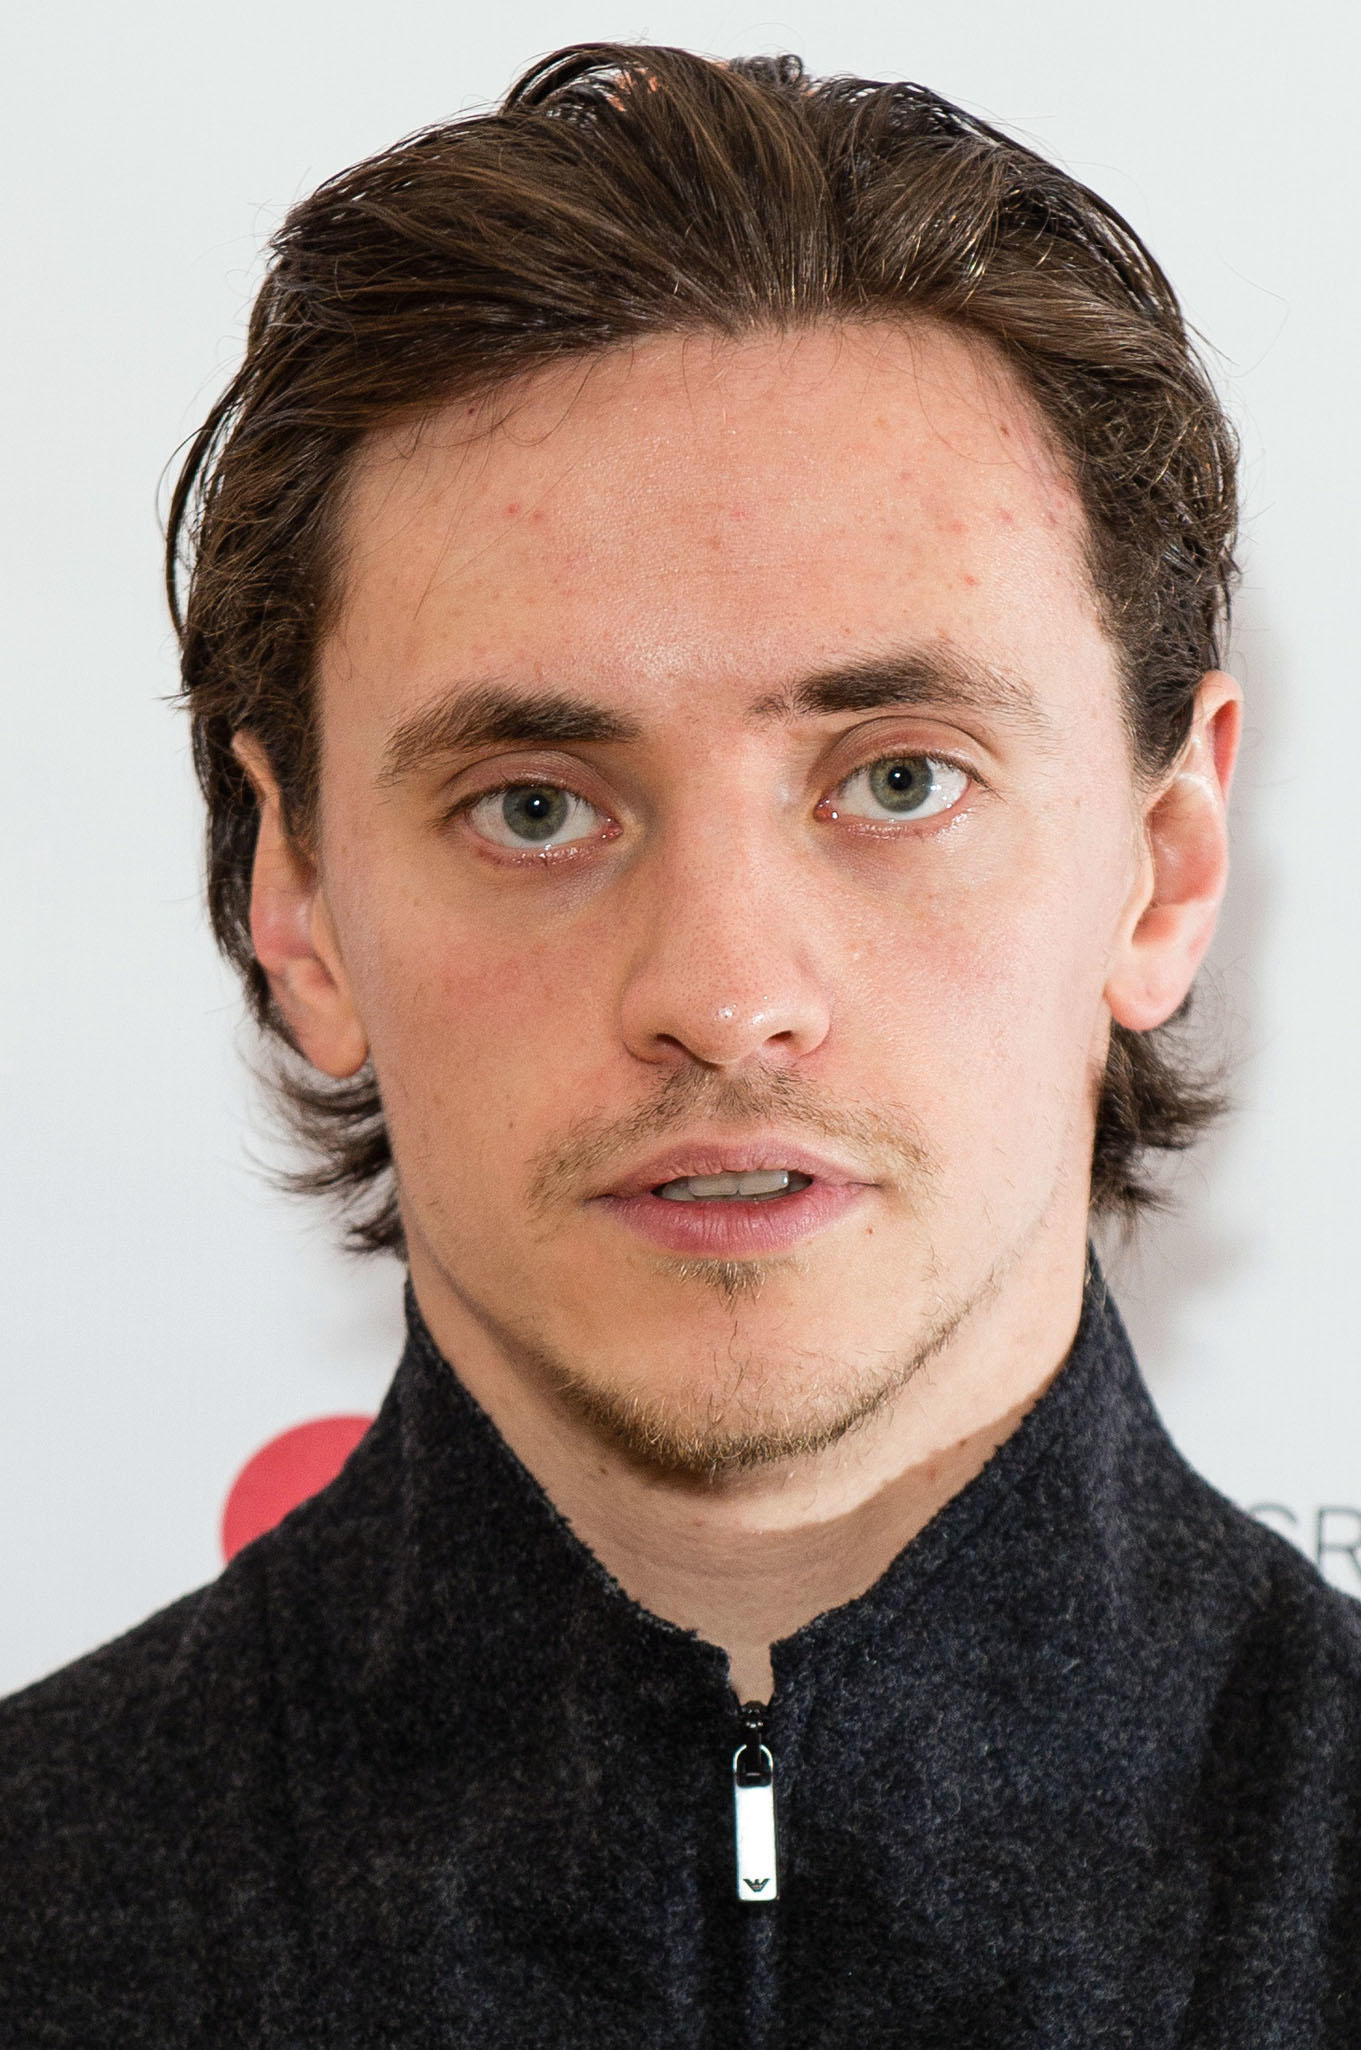 Sergei Polunin at the Eastern Seasons Gala Dinner in London.